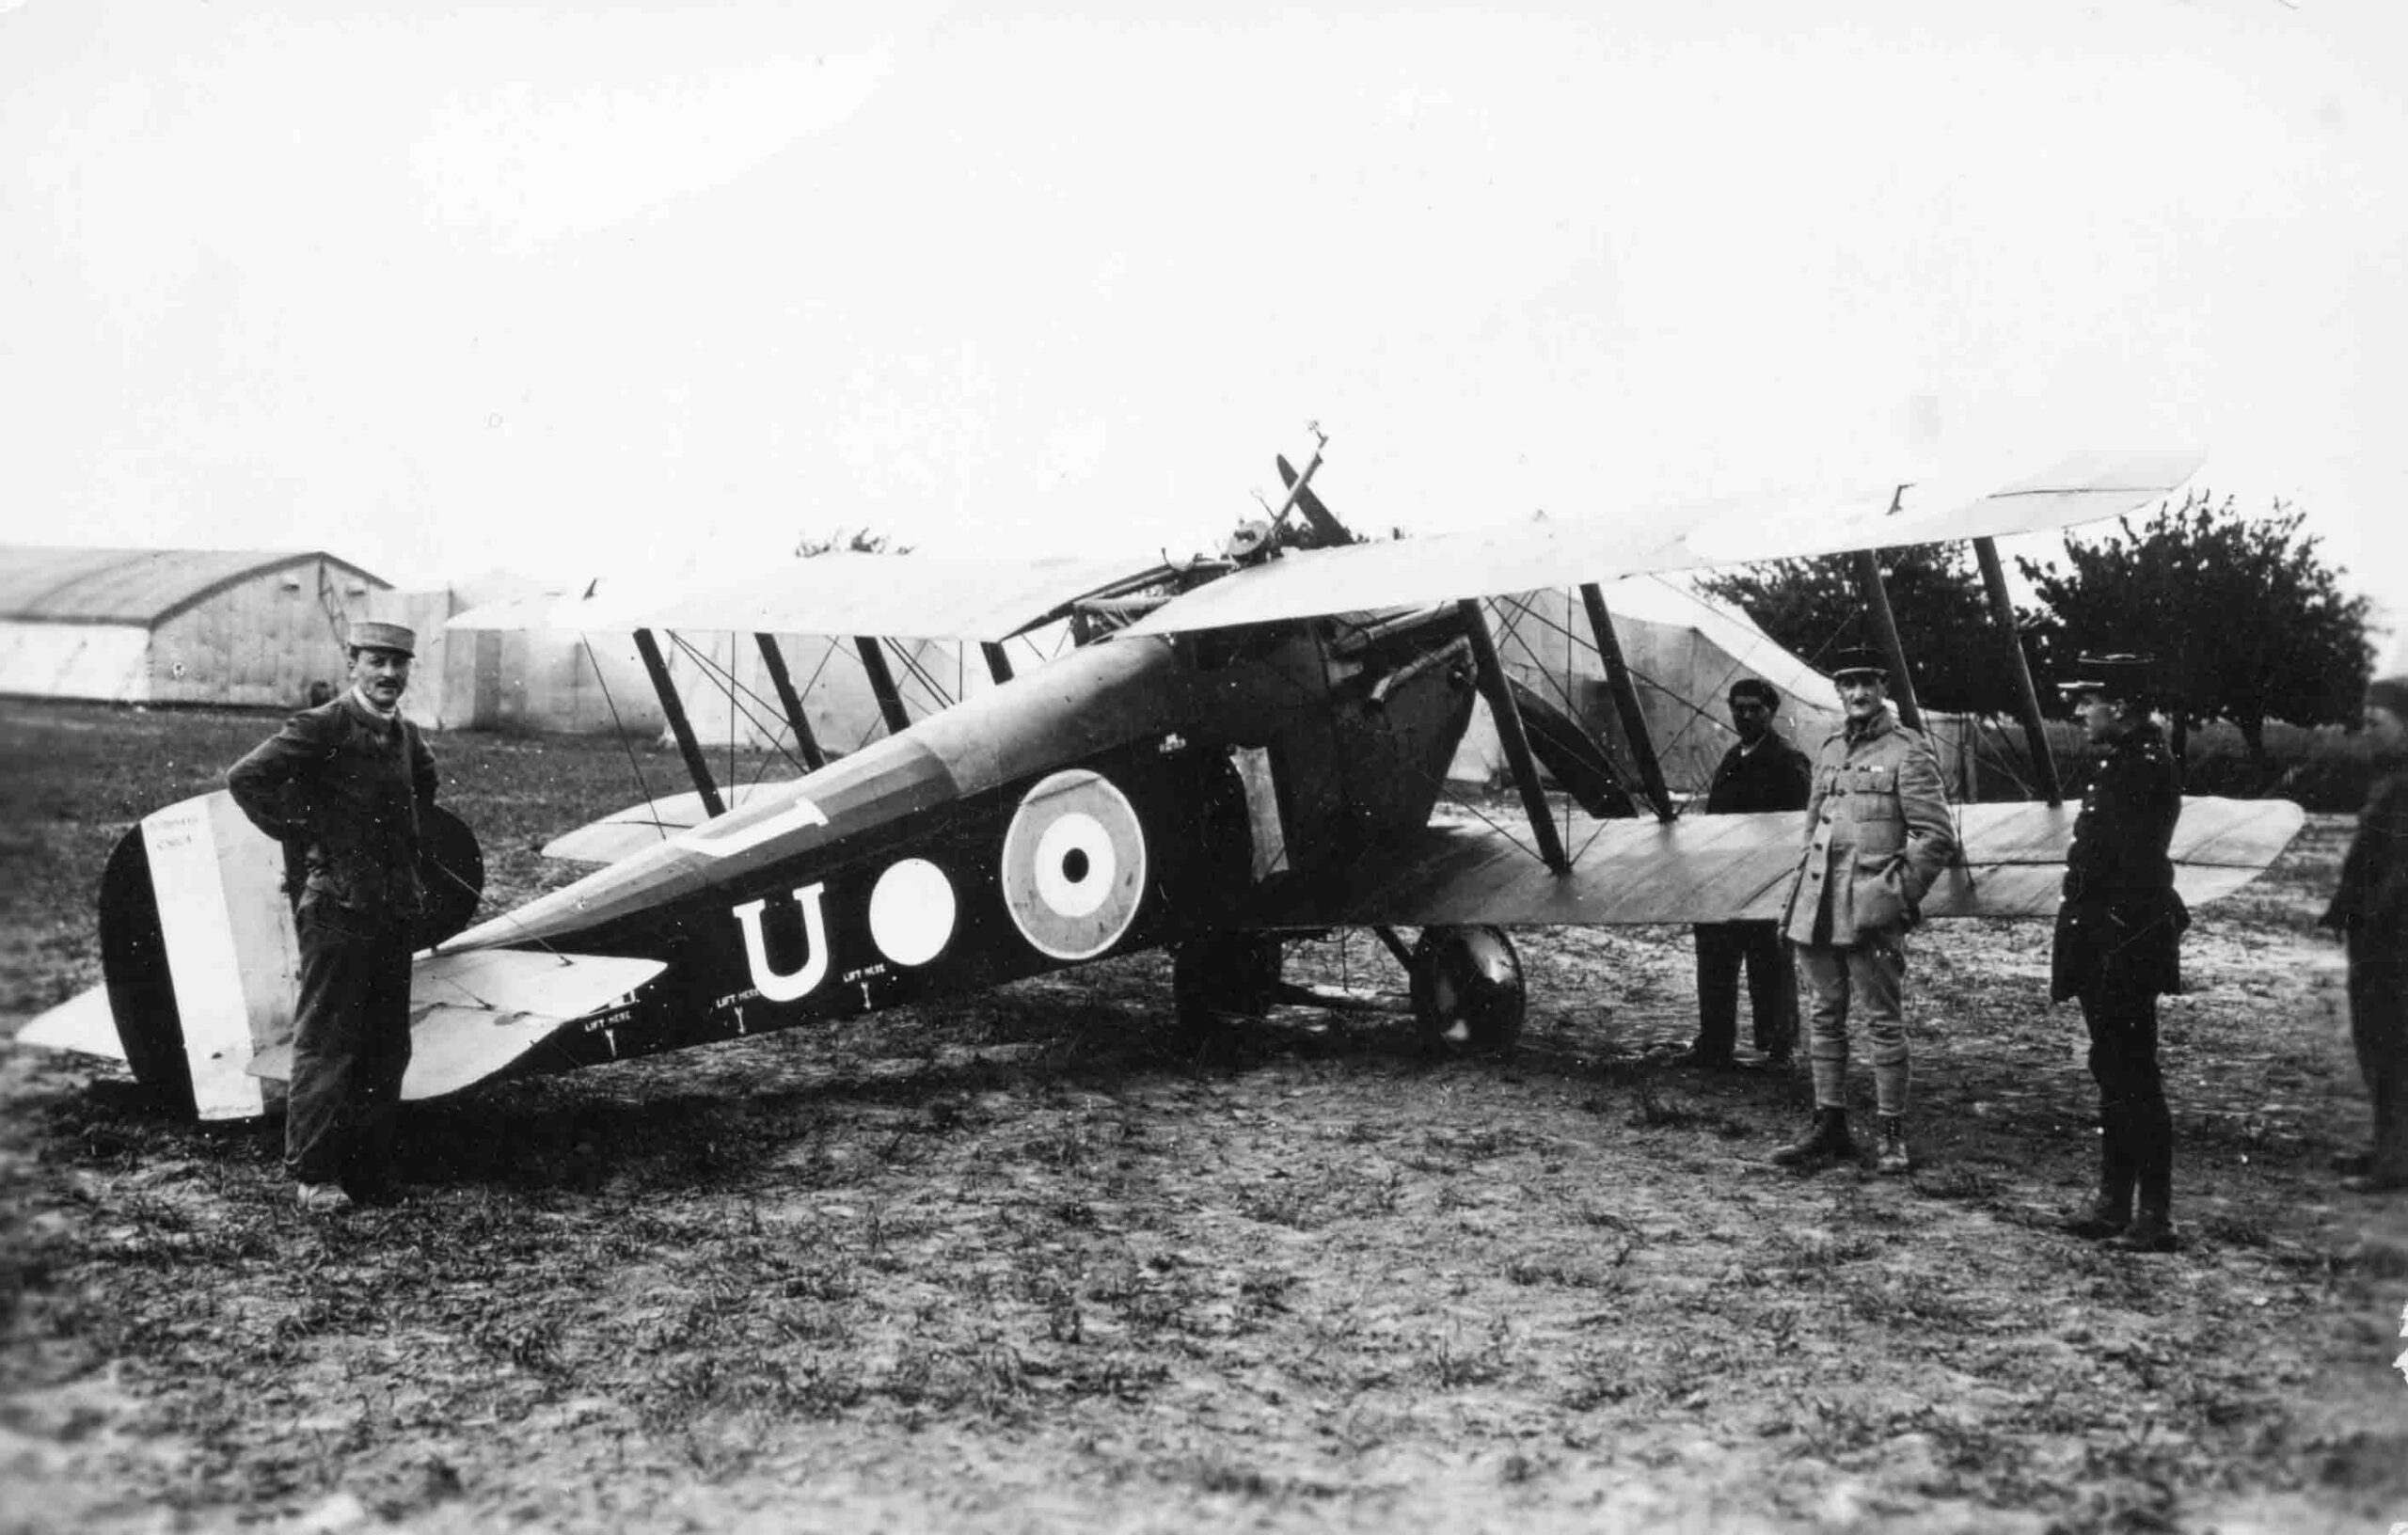 X003-2602/16034: Sopwith 5F.1 Dolphin, serial C3824, (U), with French officers gathered around, C Flight, 23 Squadron, RAF, France, 1918.  A single supplementary Lewis gun was fitted and the squadron marking of a white disc was applied to the fuselage.